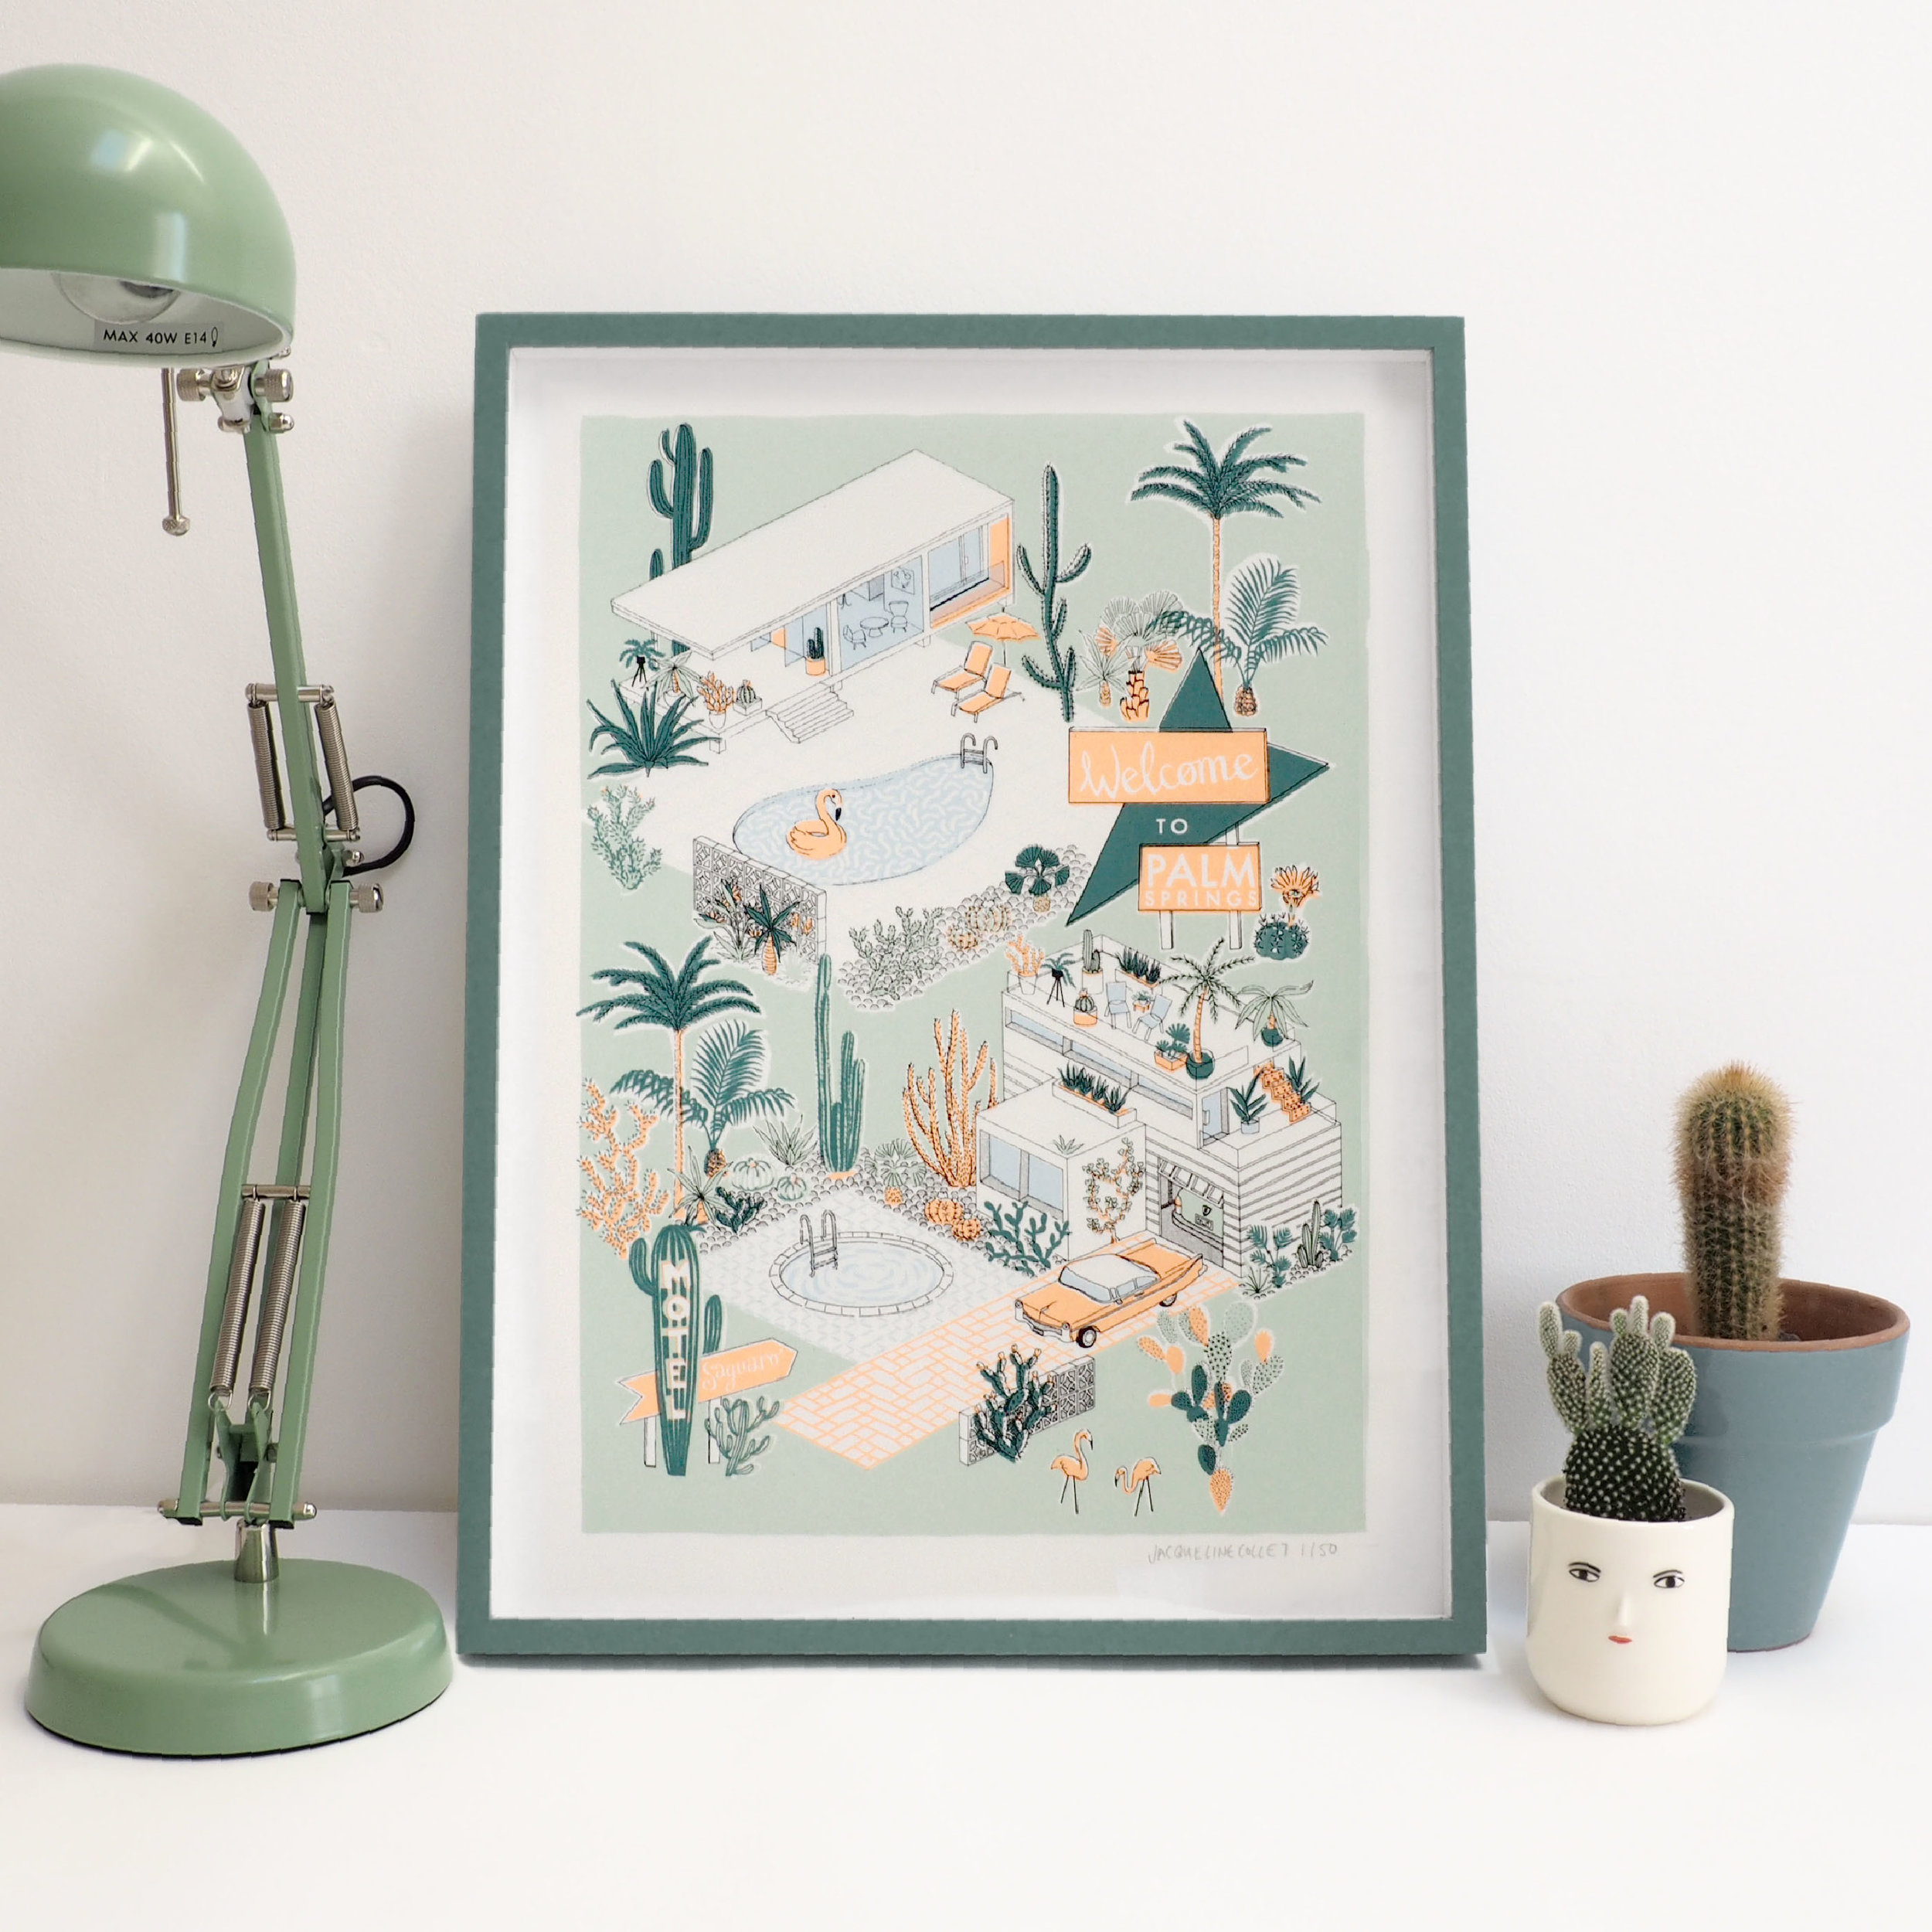 Framed-Palm-Springs-Screenprint-1.jpg